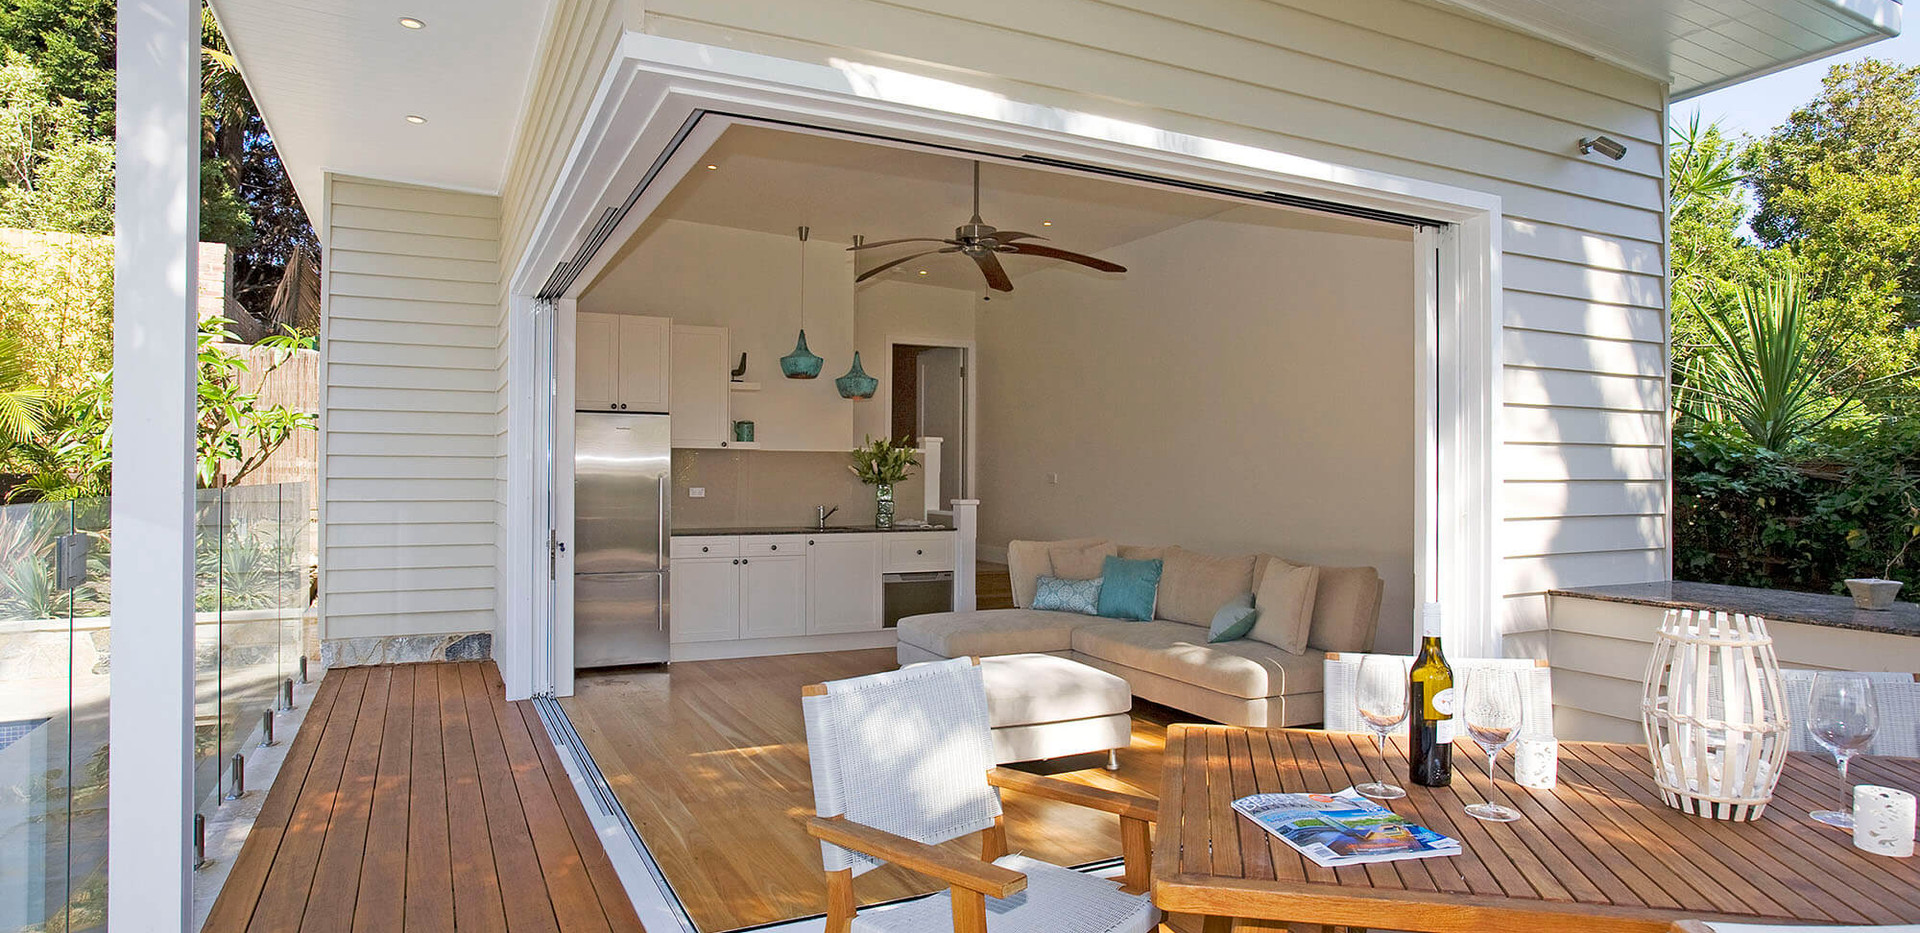 Balgowlah Heights Cabana and pool - high end residential interior design